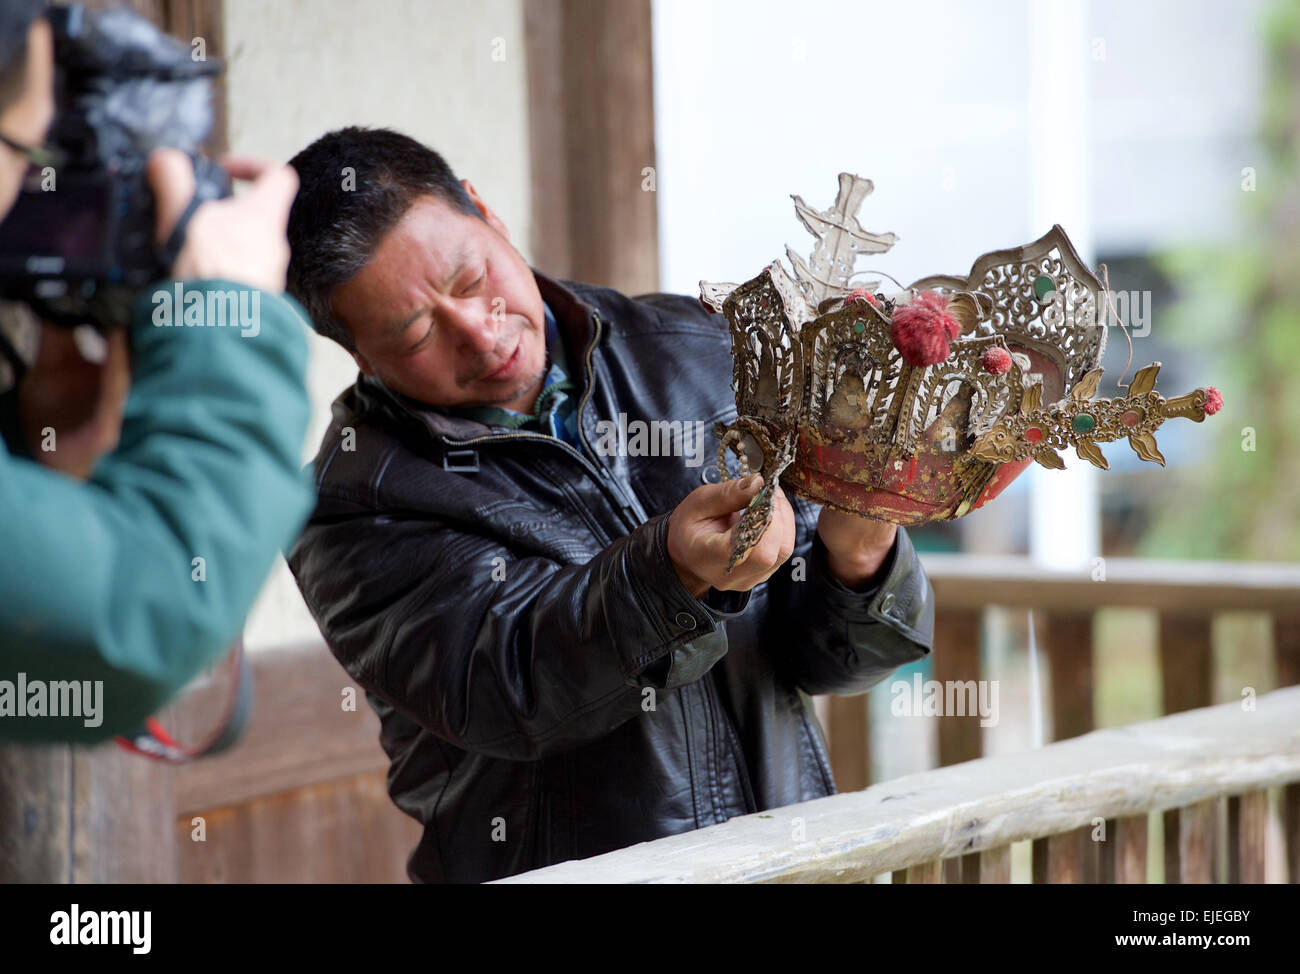 (150325) -- DATIAN, March 25, 2015 (Xinhua) -- A villager shows the crown of the Buddha statue with a mummified - Stock Image